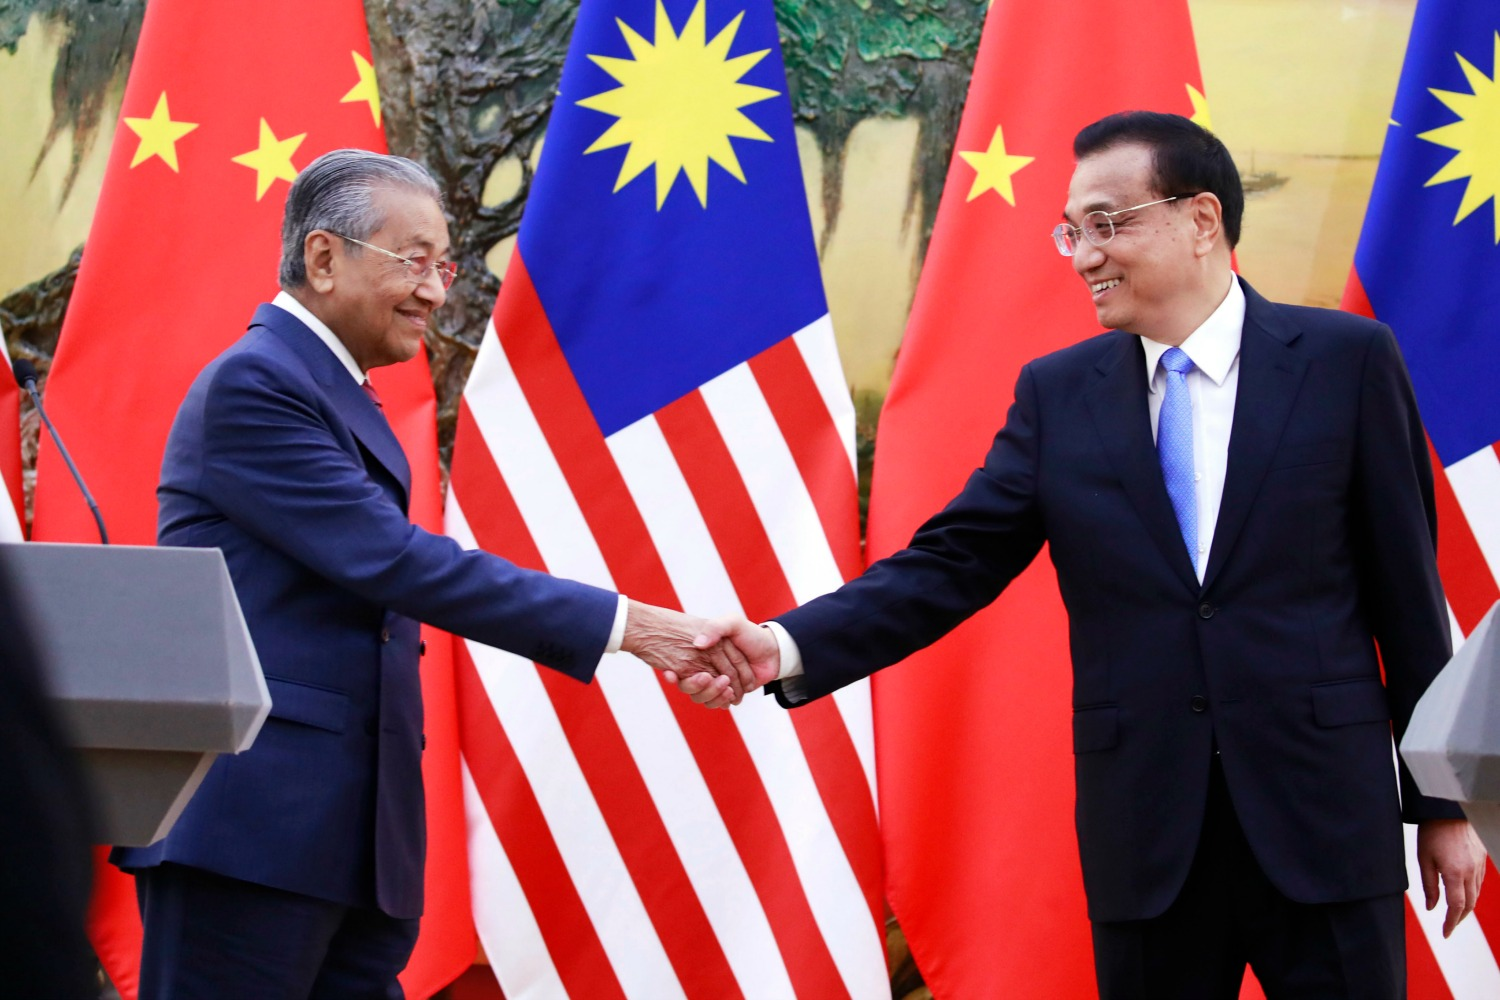 Low expectations greet a new round of us china trade talks malaysian prime minister mahathir mohamad left shakes hands with his chinese counterpart li keqiang at the end of a press conference at the great hall m4hsunfo